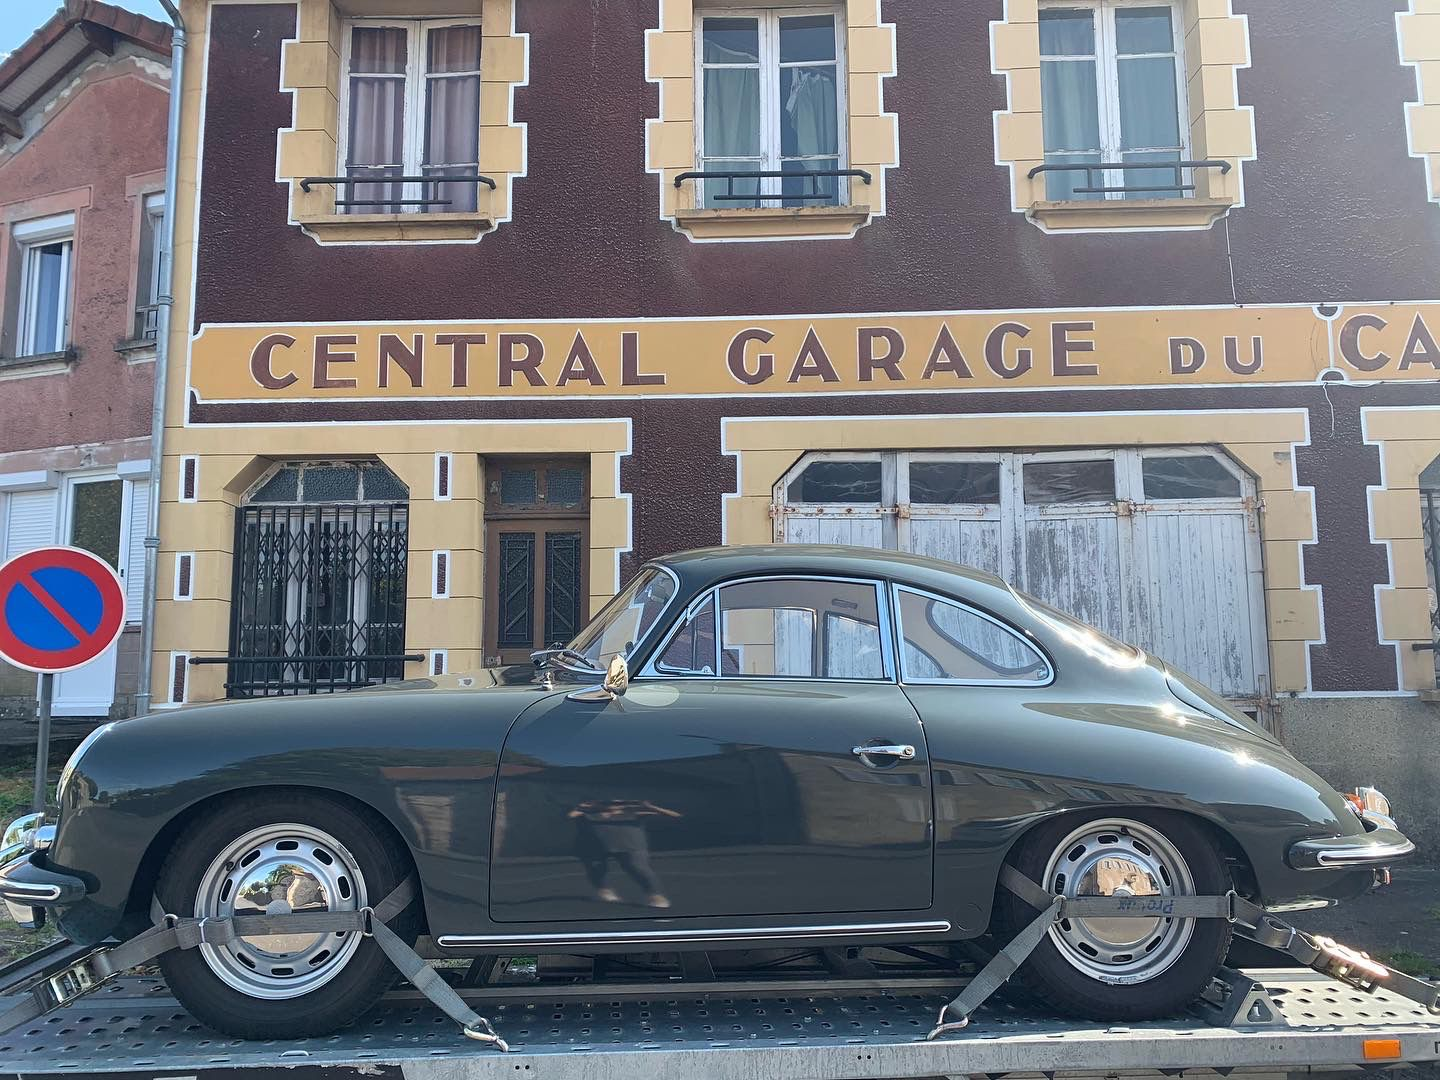 Air-cooled road trip : La côte d' azur